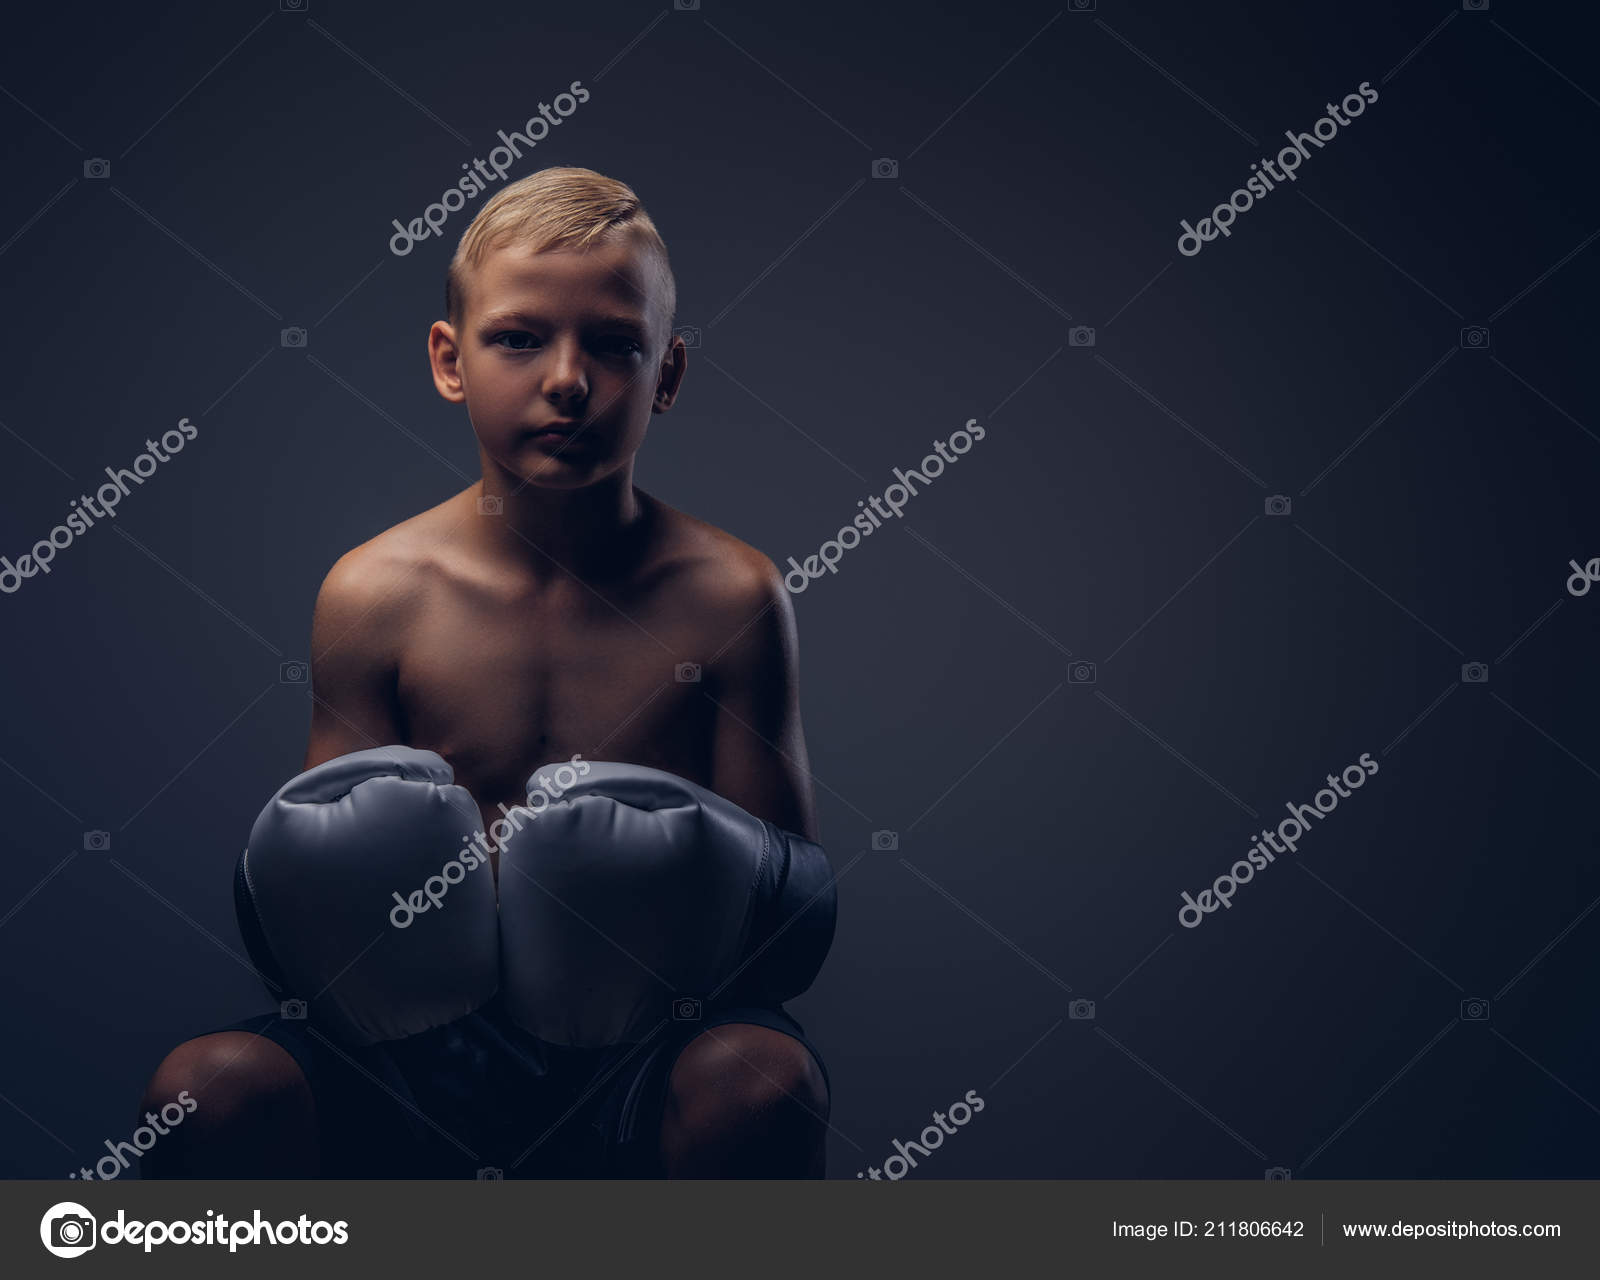 Shirtless teen male celebrities boxing lessons